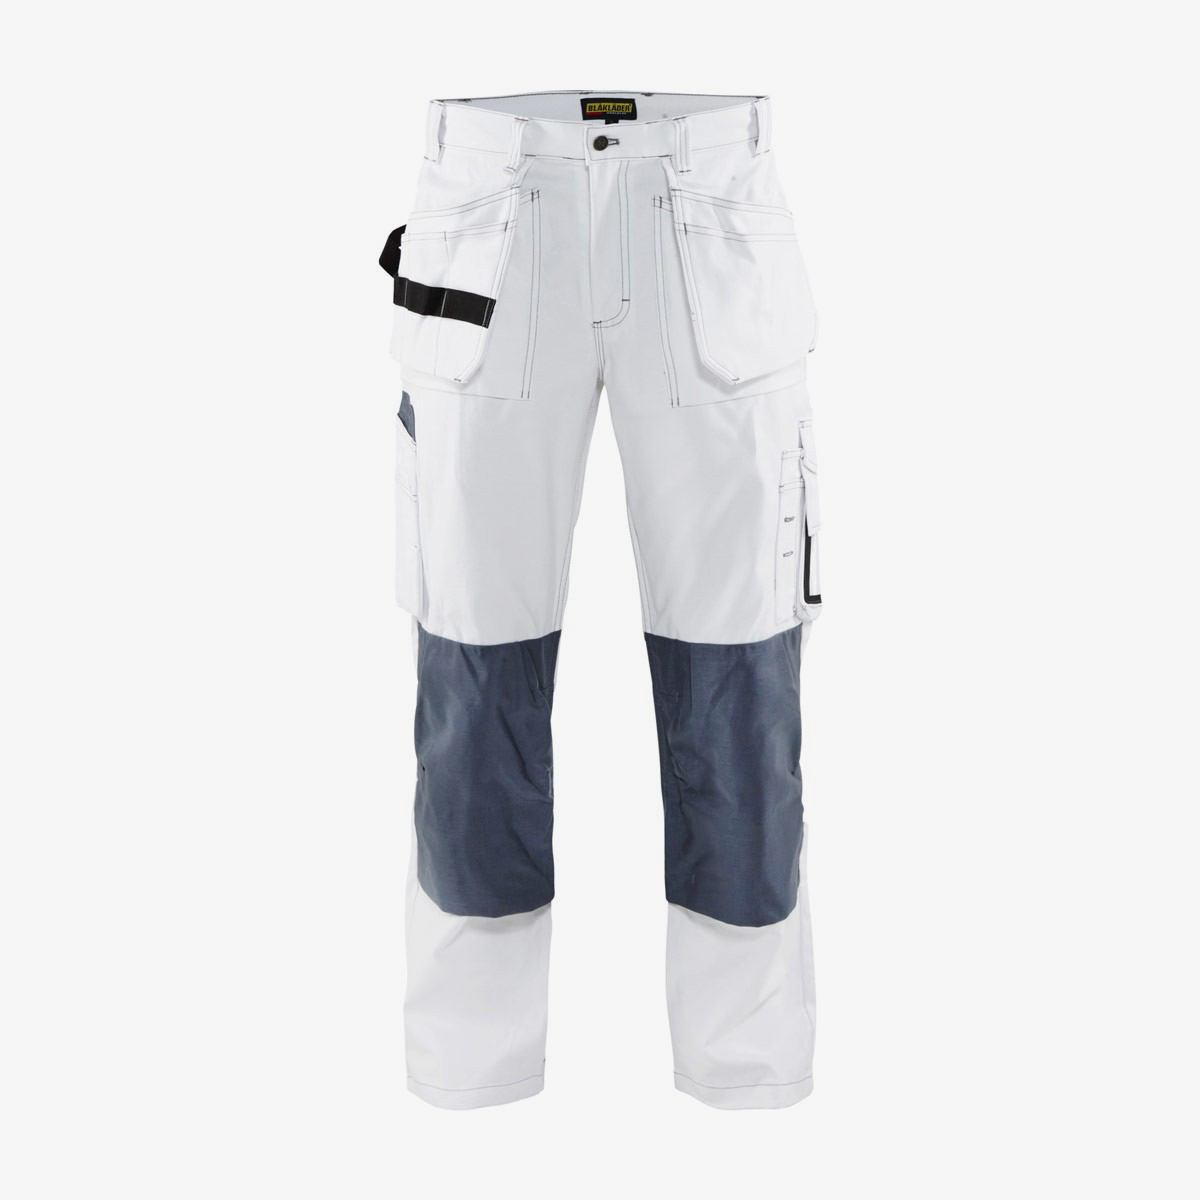 Puma's Blue Natural Reinforced Knee Painters Pants